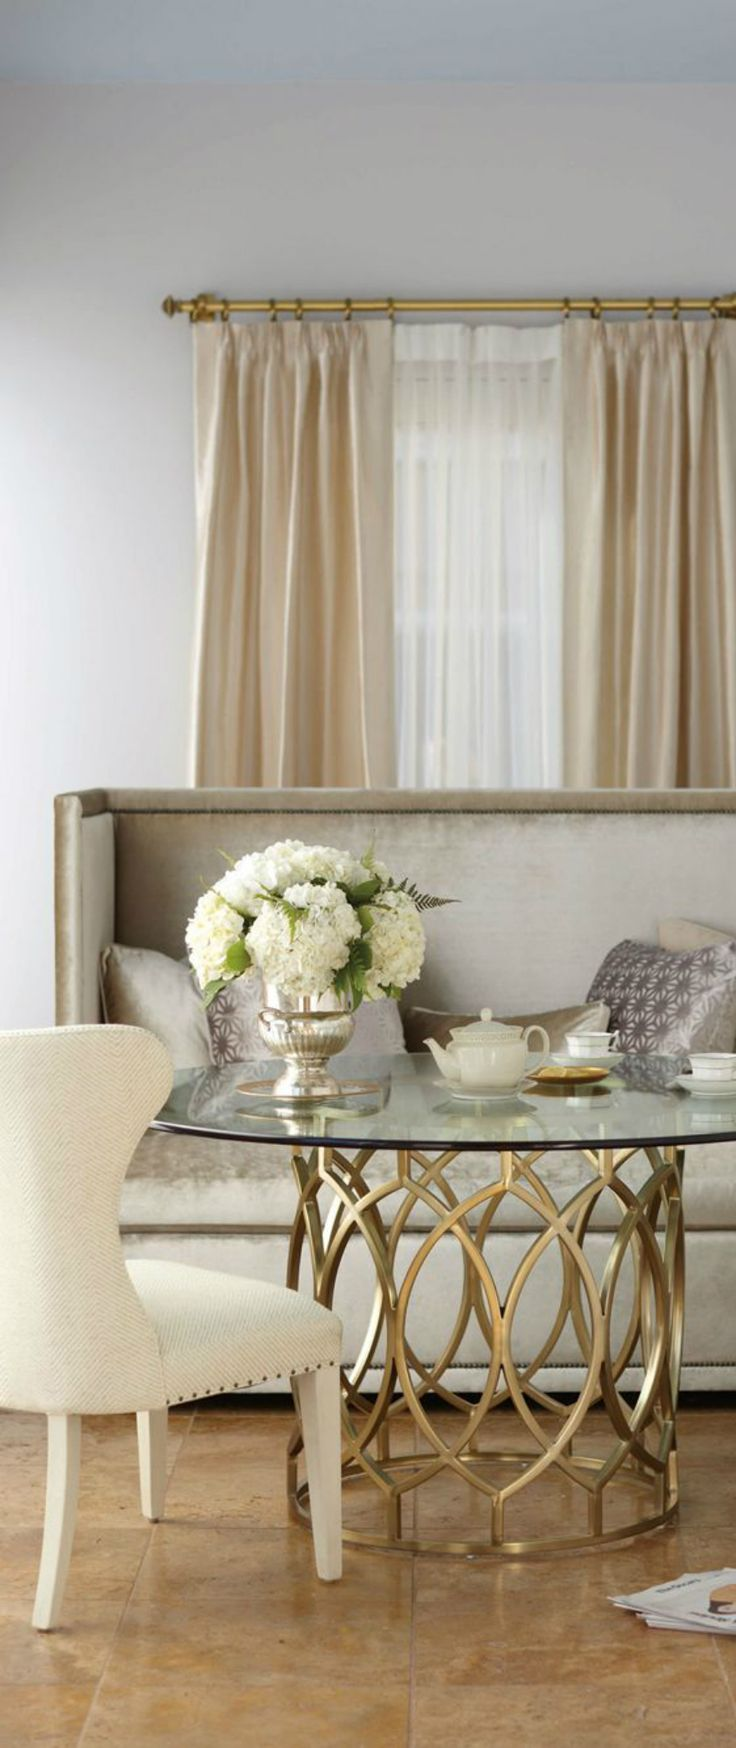 Get Inspired And Find Your Decoration Style| Living Room | Gold And Silver | Furniture | Coffee and Side Tables | Designs